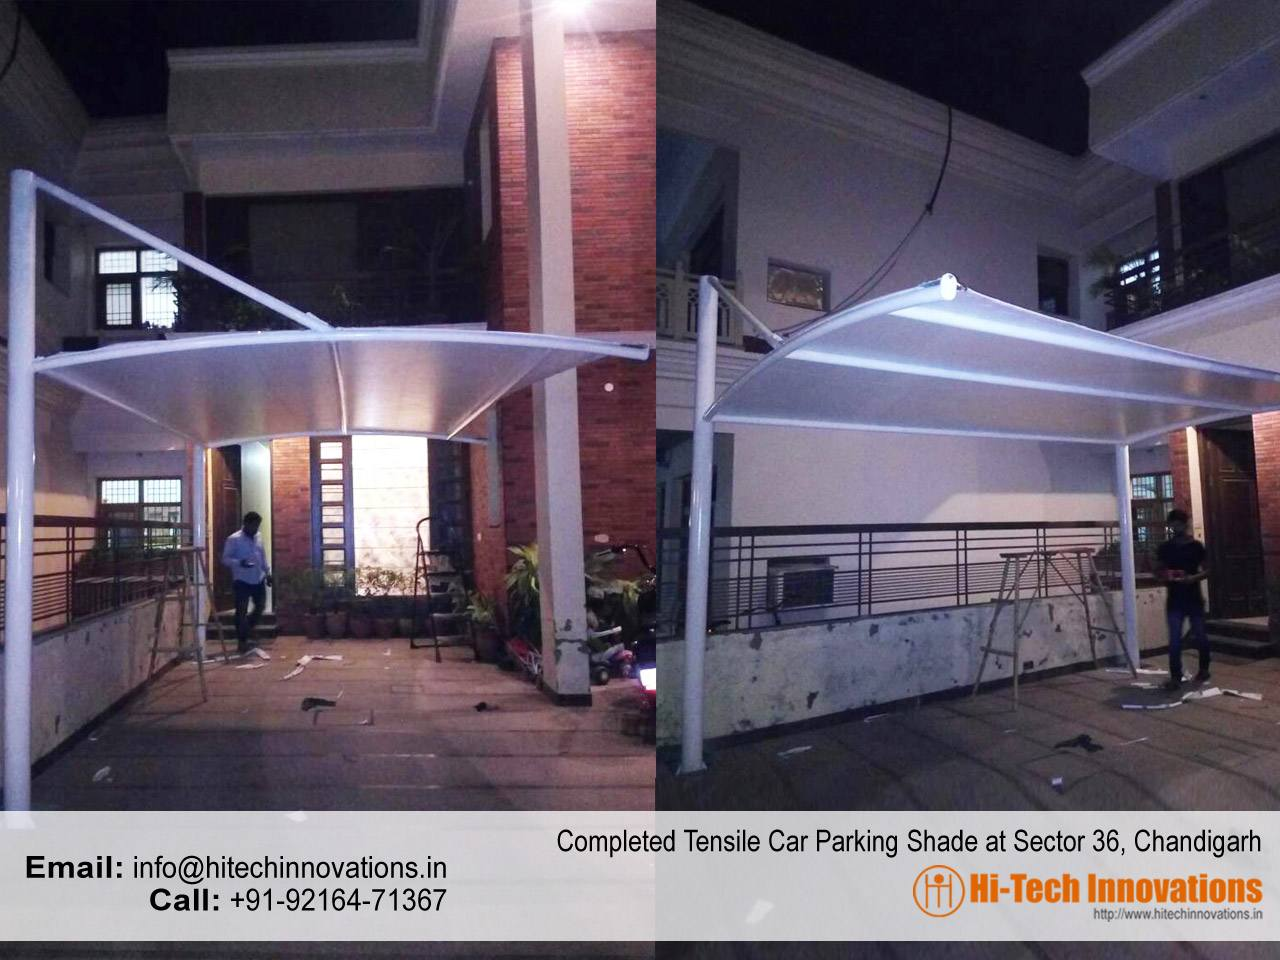 Completed Tensile Car Parking Shade in Sector-36